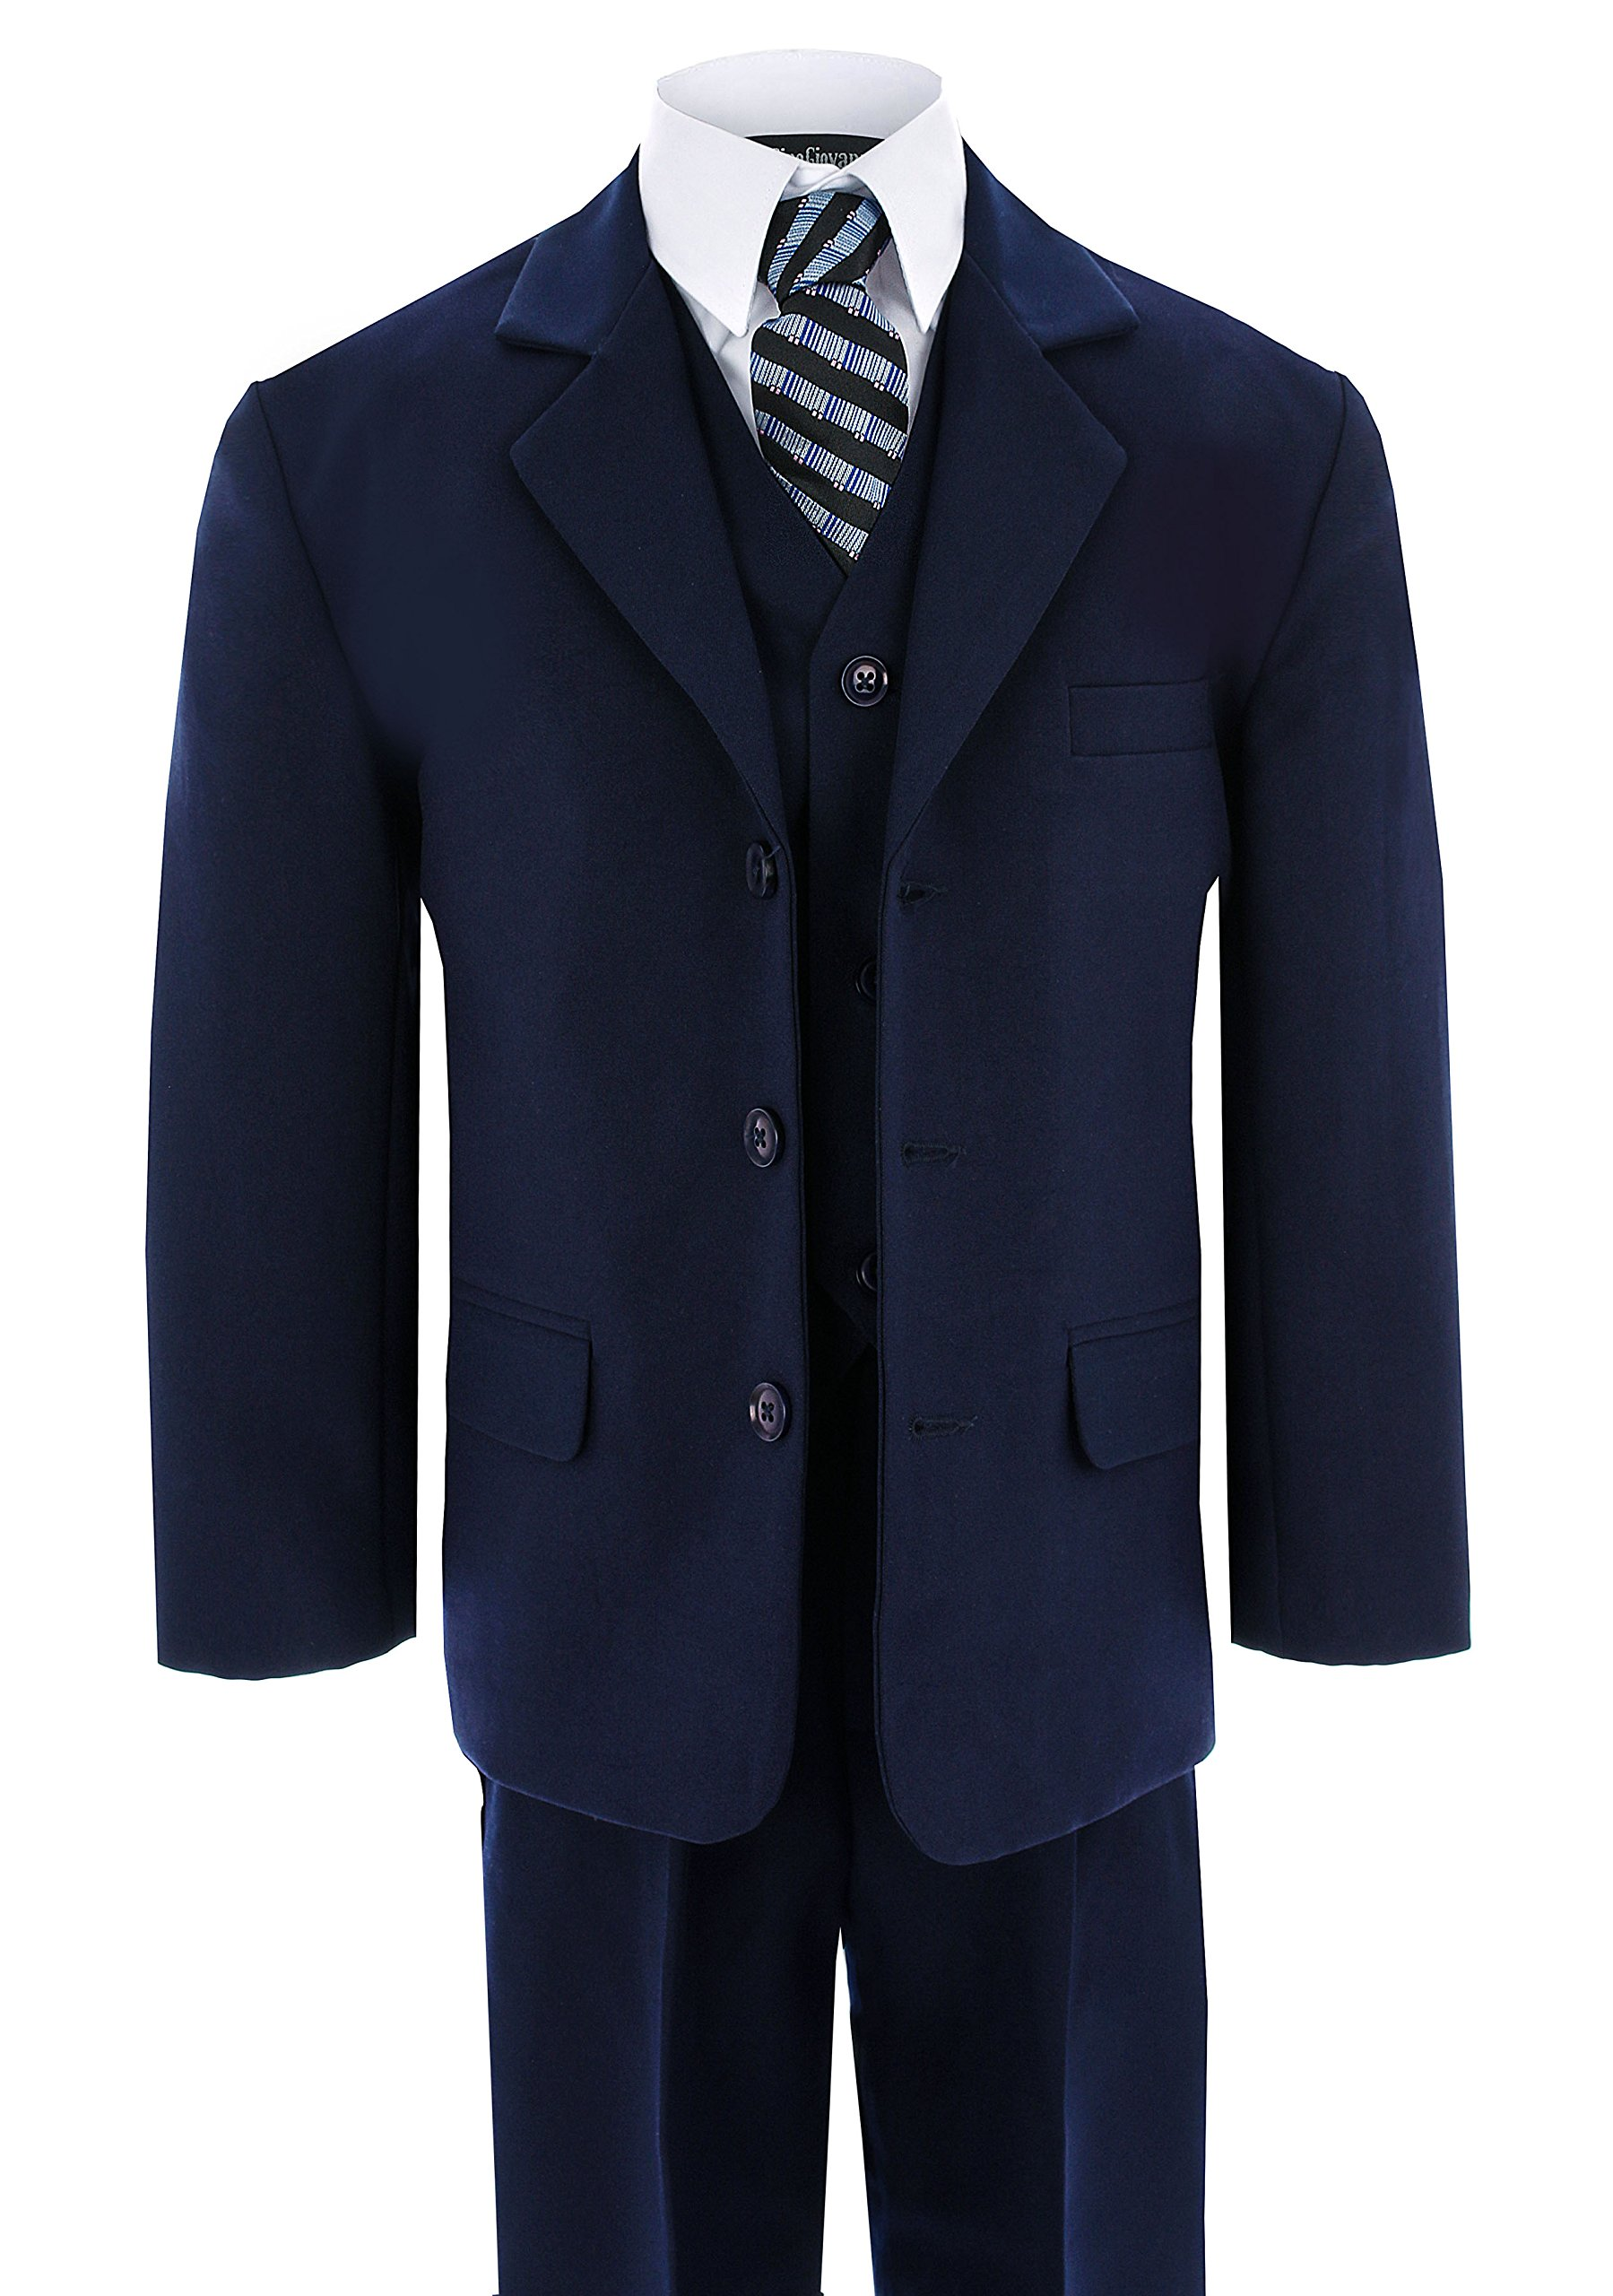 Gino Boys G230 Navy Blue Suit Set From Baby to Teens (5)